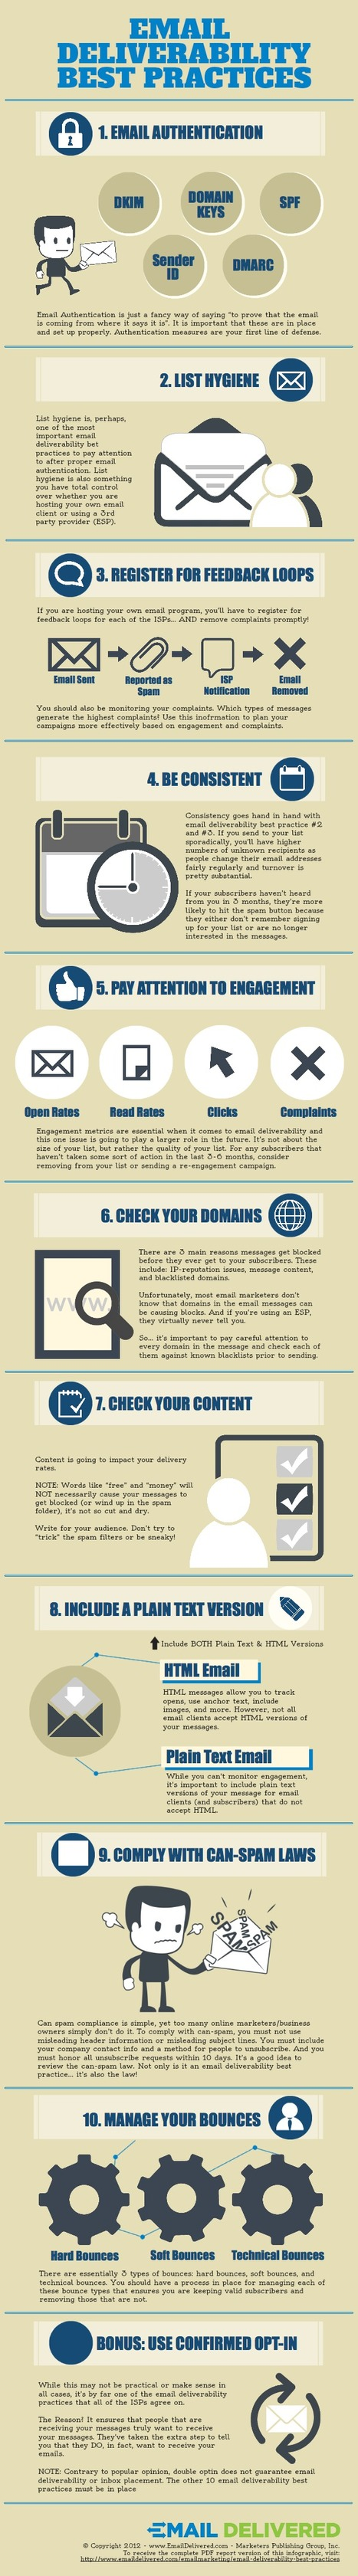 INFOGRAPHIC: Email Deliverability Best Practices | Email Marketing & Email Deliverability | Easy Ways To Get Your Own List | Scoop.it